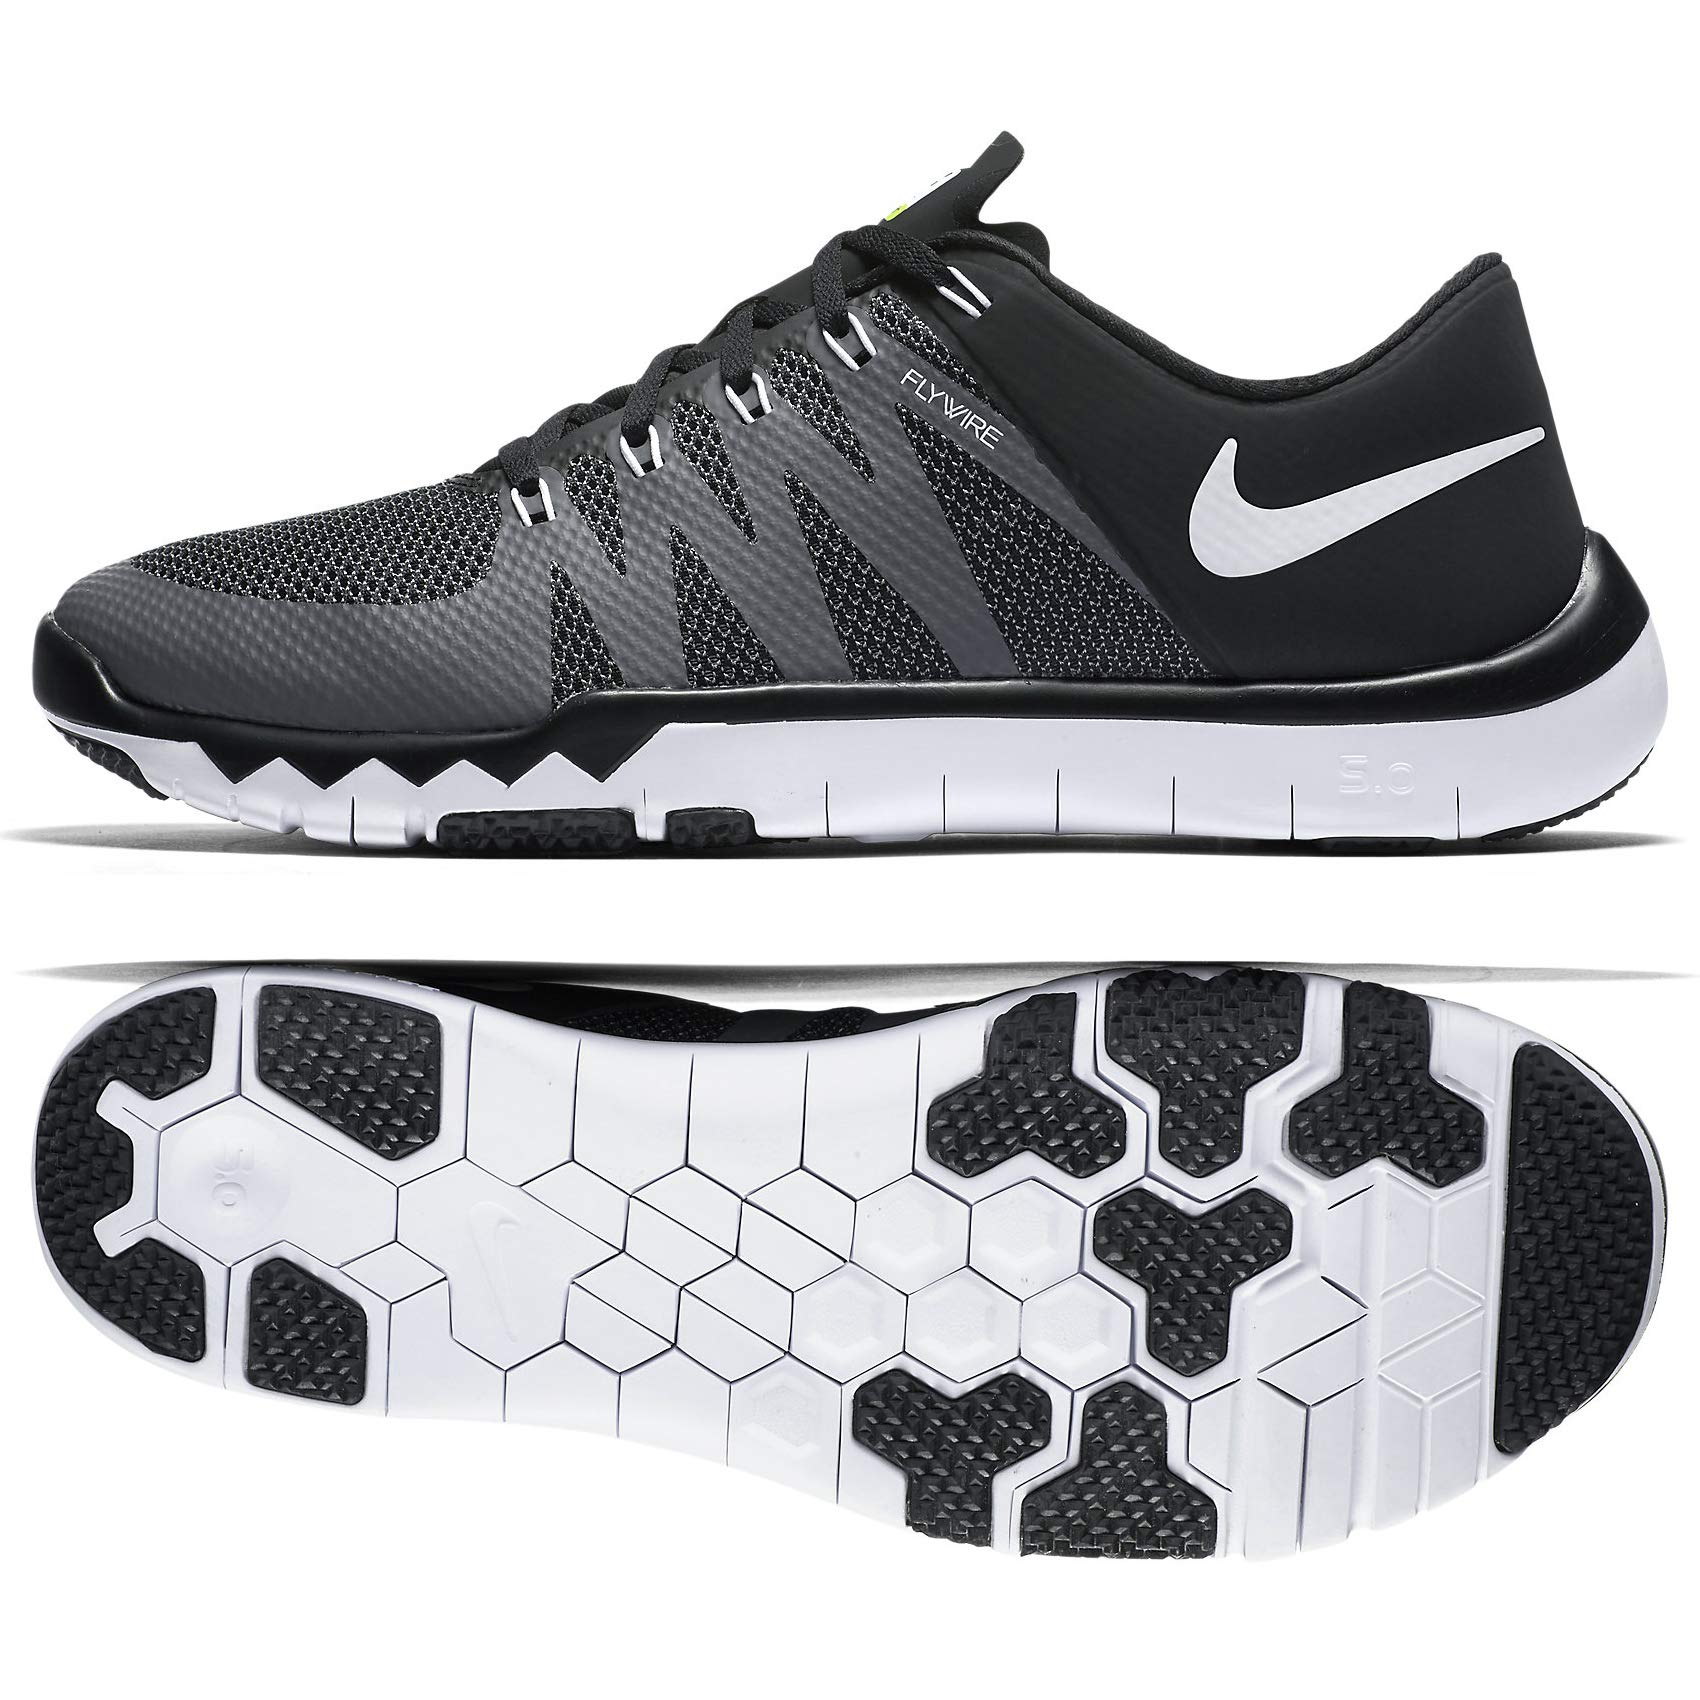 b4313a101bd66 Galleon - NIKE Men s Free Trainer 5.0 Black Dark Grey Volt White 719922-010  (Size  12)